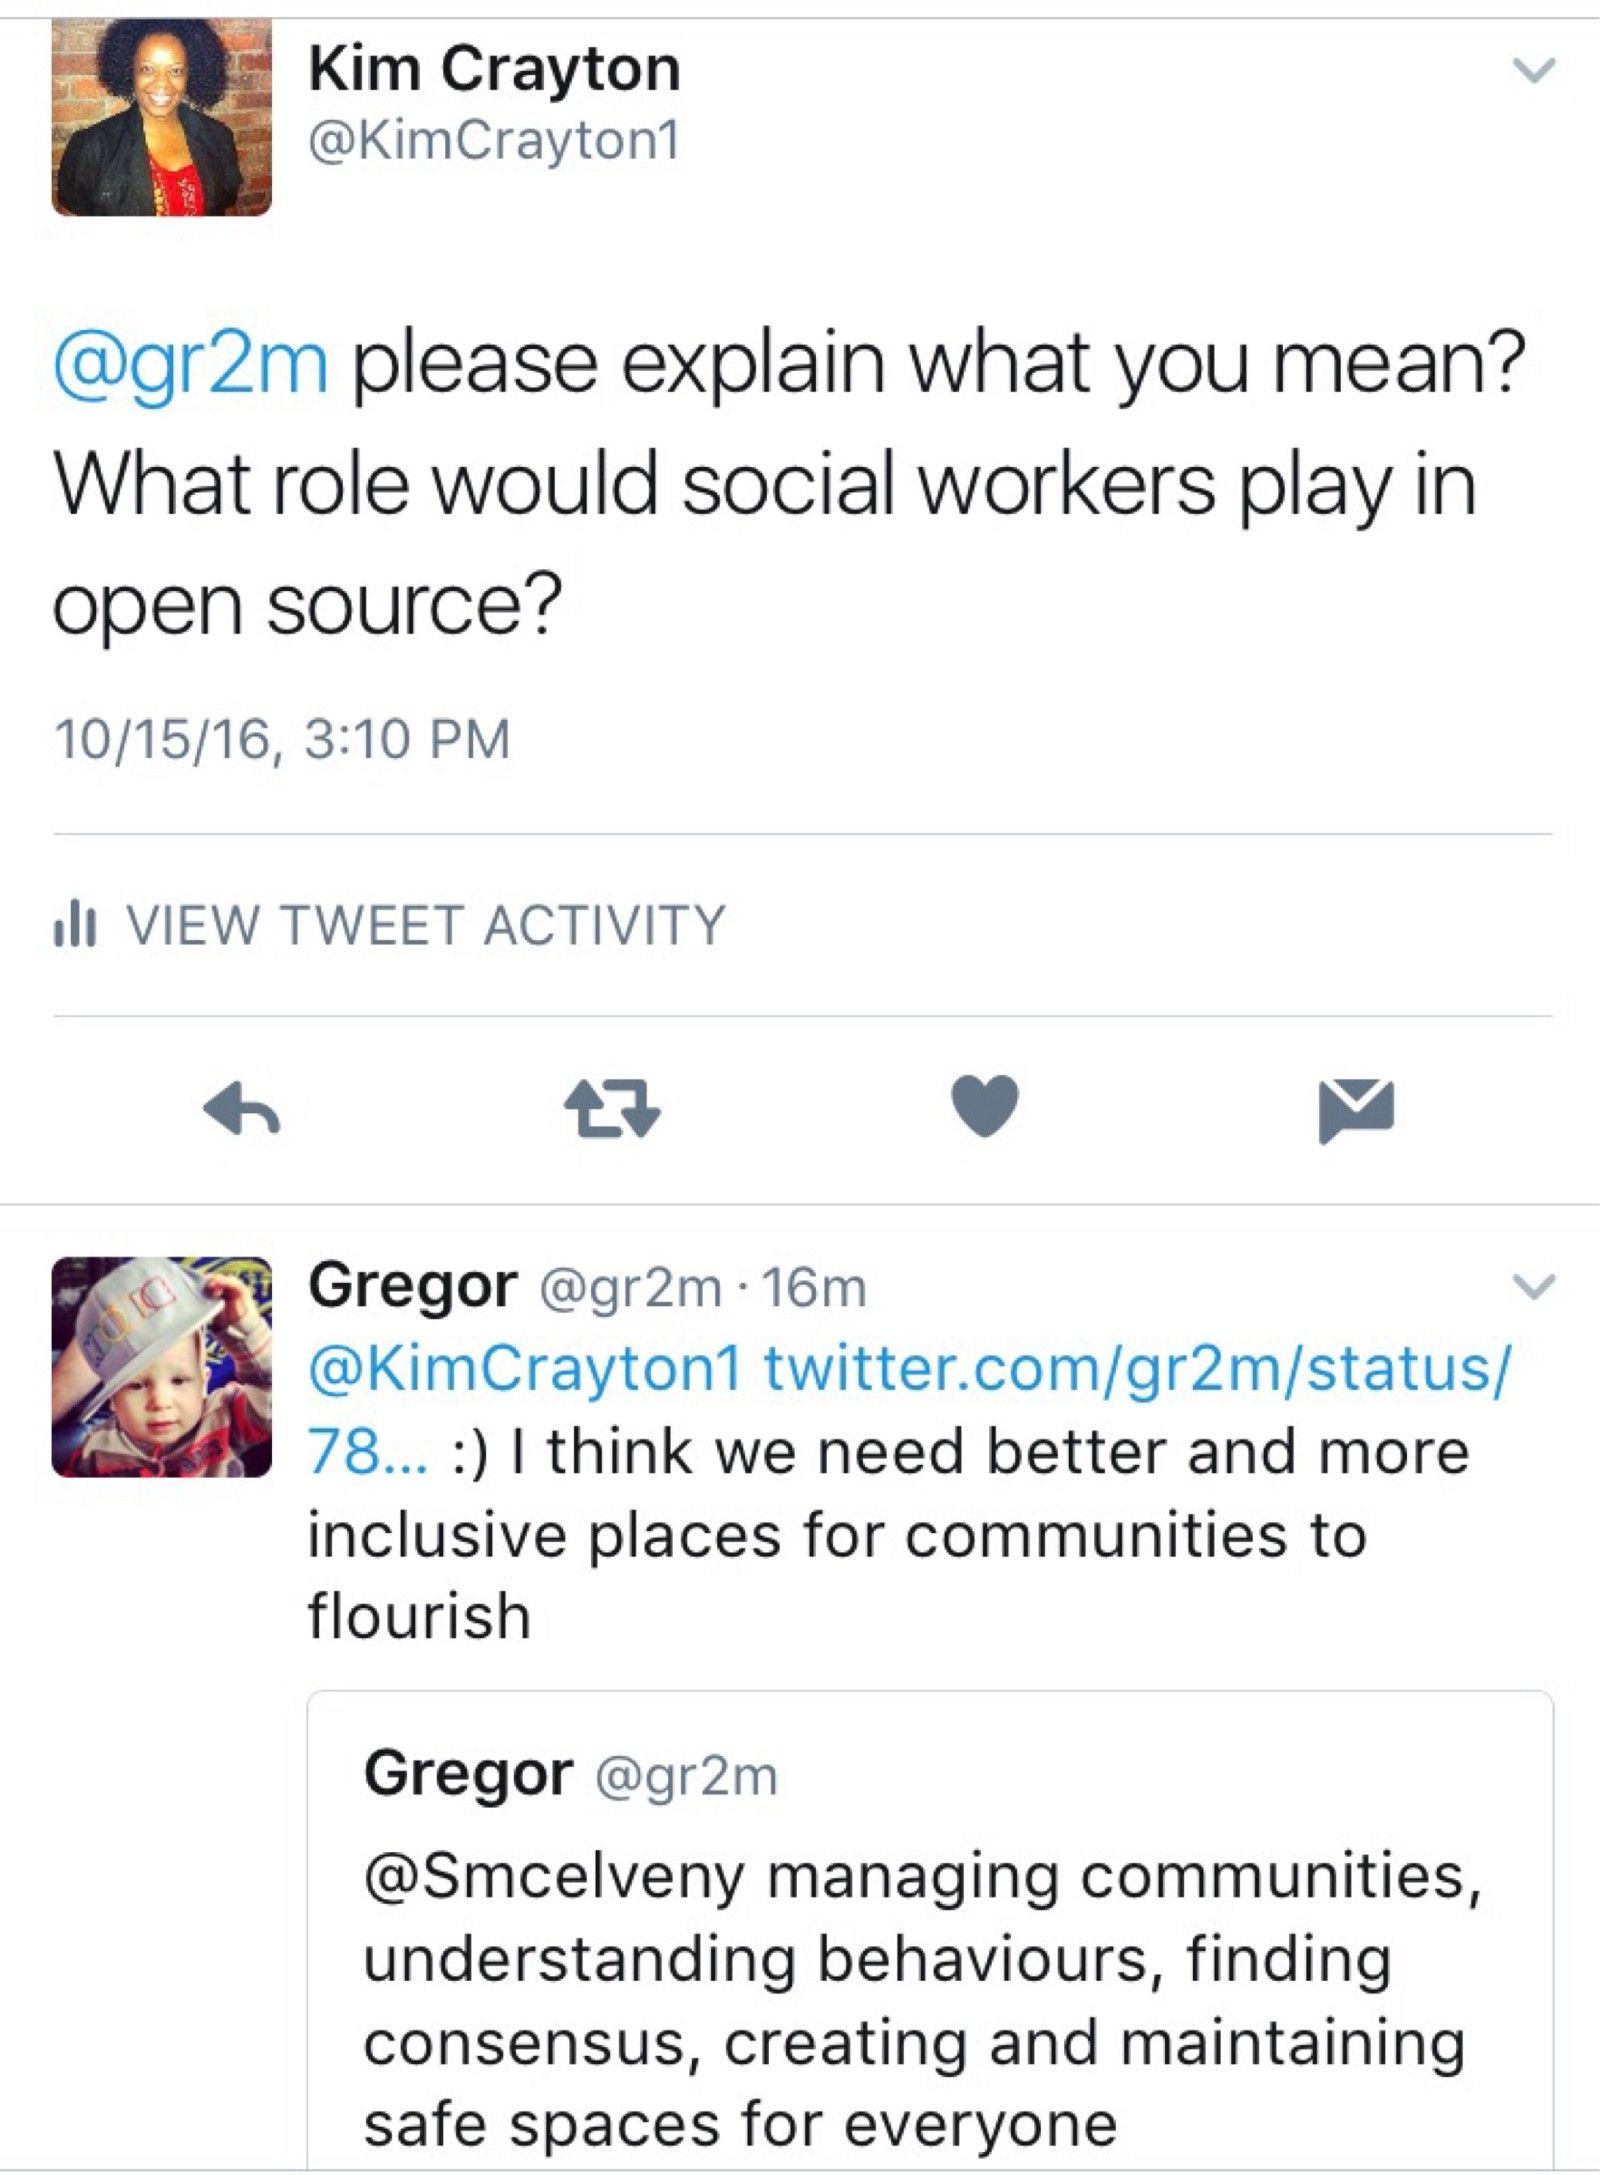 """Twitter thread with @KimCrayton1 asking @gr2m for clarification and @gr2m responding with """"I think we need better more inclusive places for communities to flourish"""